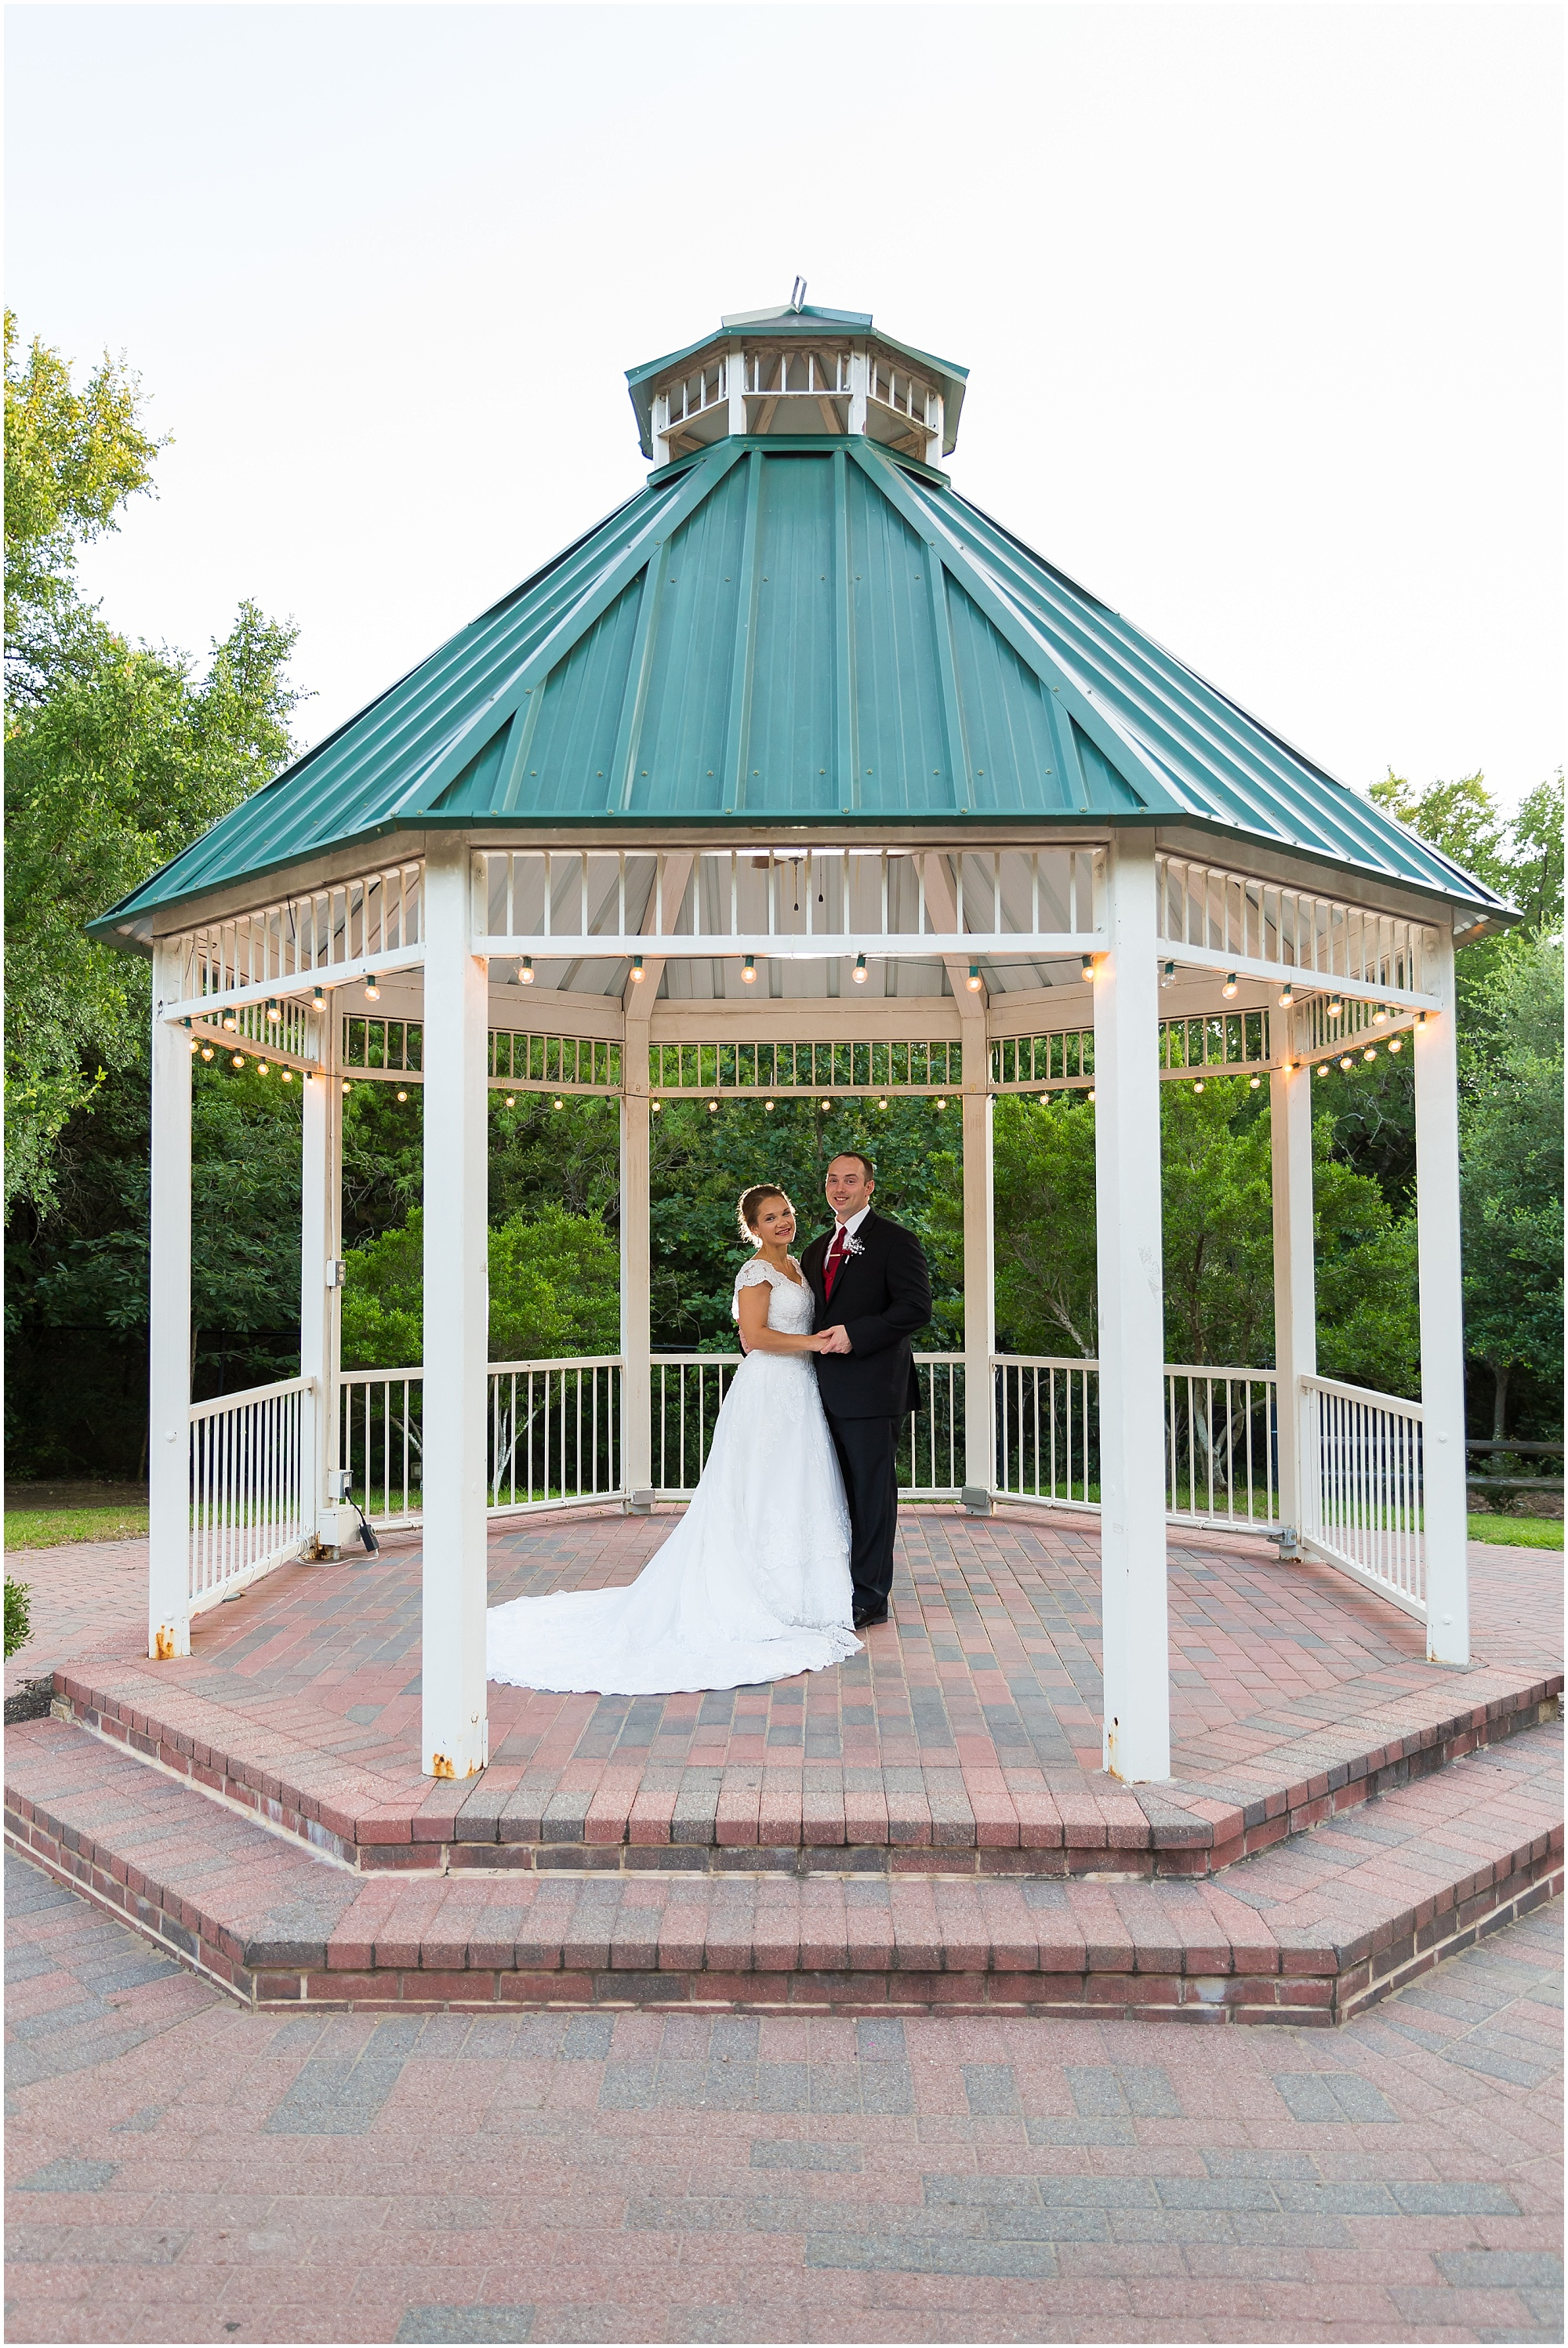 A groom and his bride pose together under the gazebo at Carleen Bright Arboretum in Woodway, Texas - Jason & Melaina Photography - www.jasonandmelaina.com